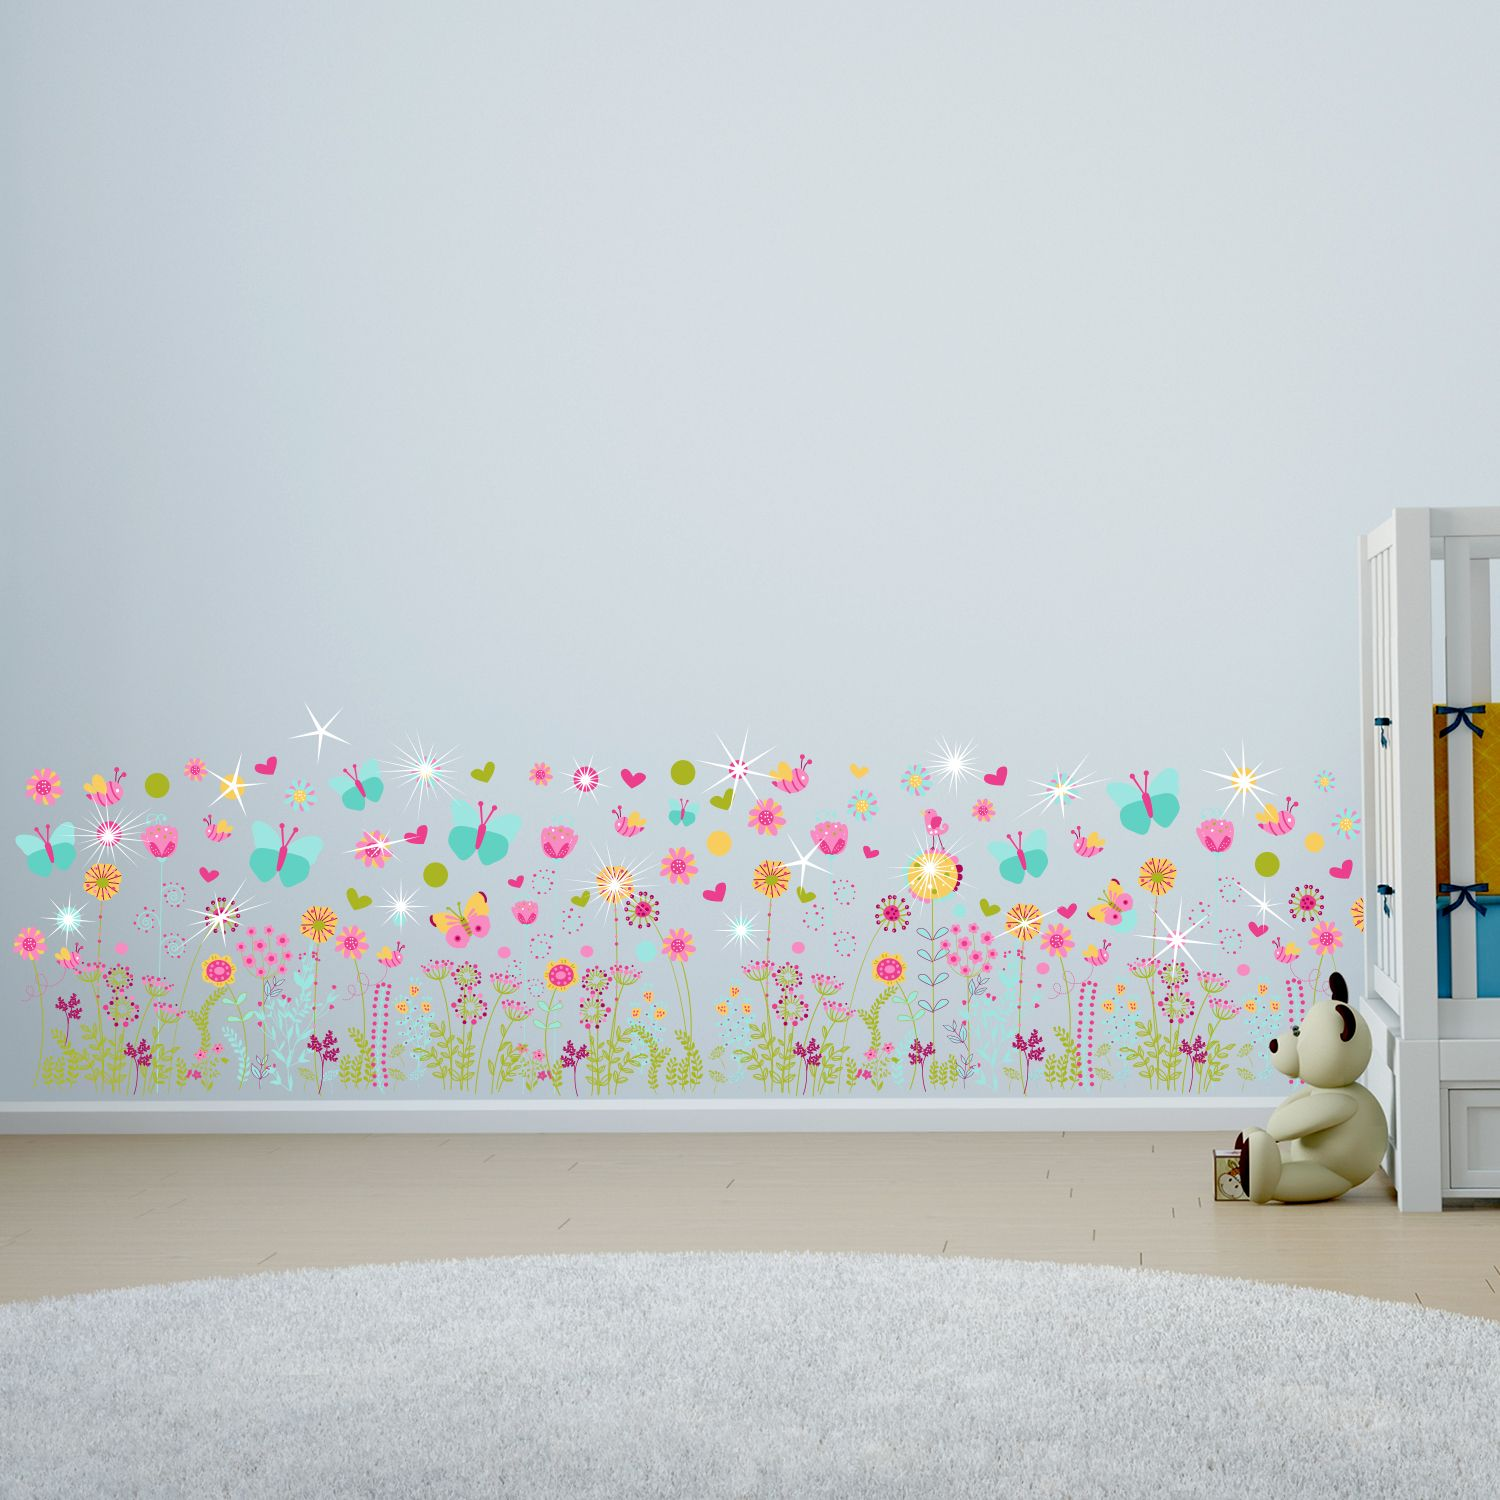 Walplus Wall Sticker Colourful Butterflies with Flower Skirting Decoration with Swarovski Crystals